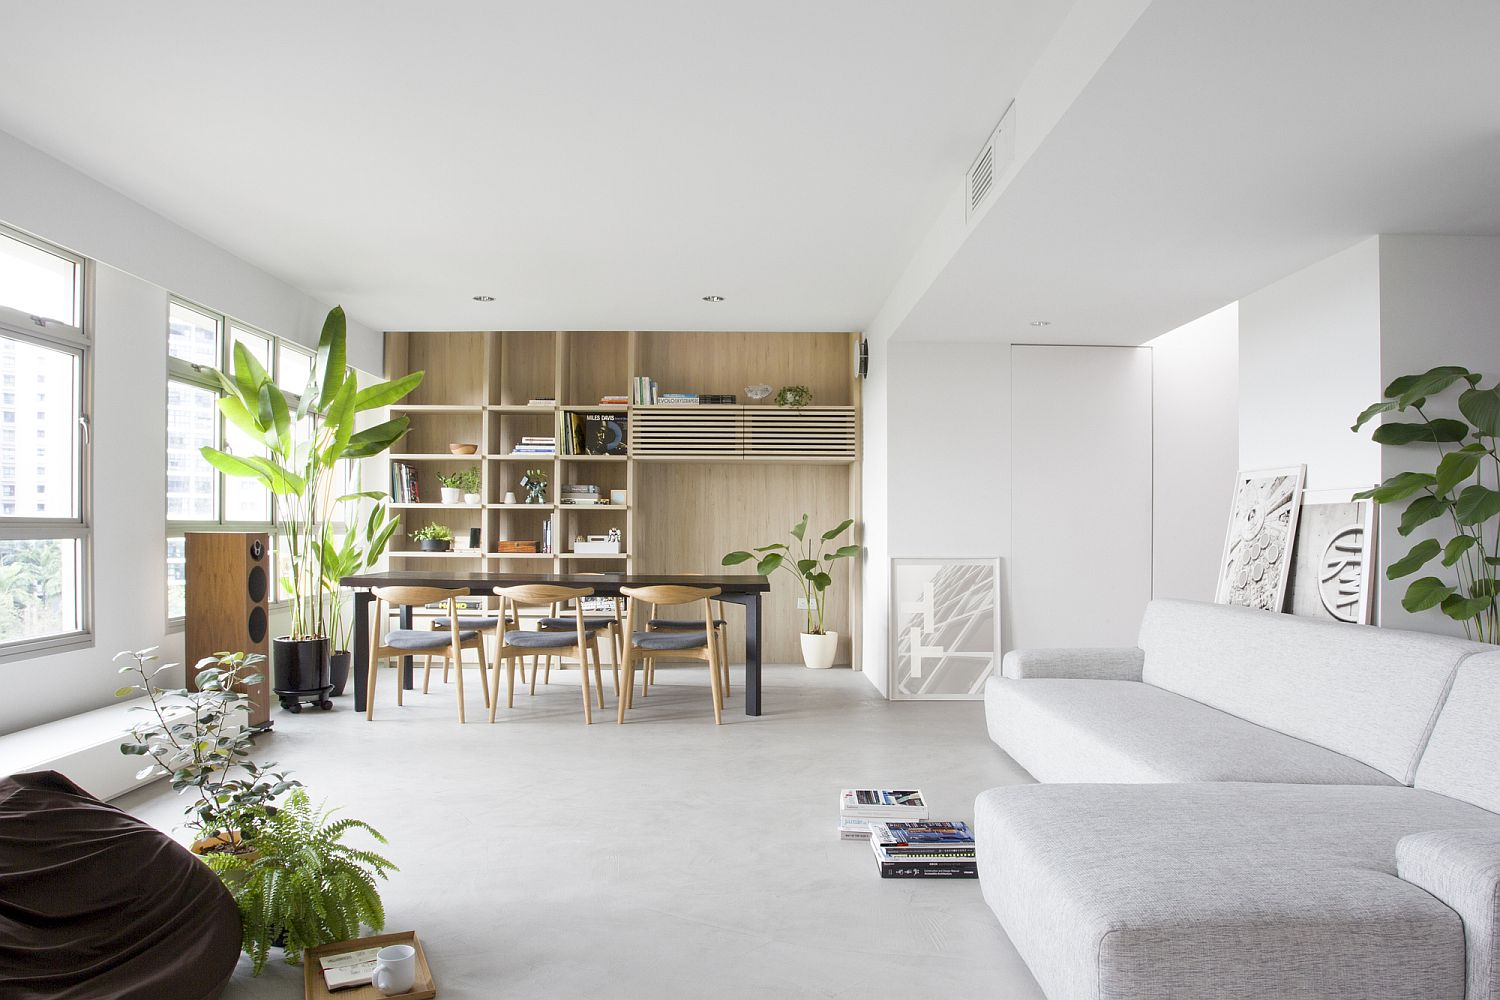 Finding the right space for the dining area inside the small urban apartment